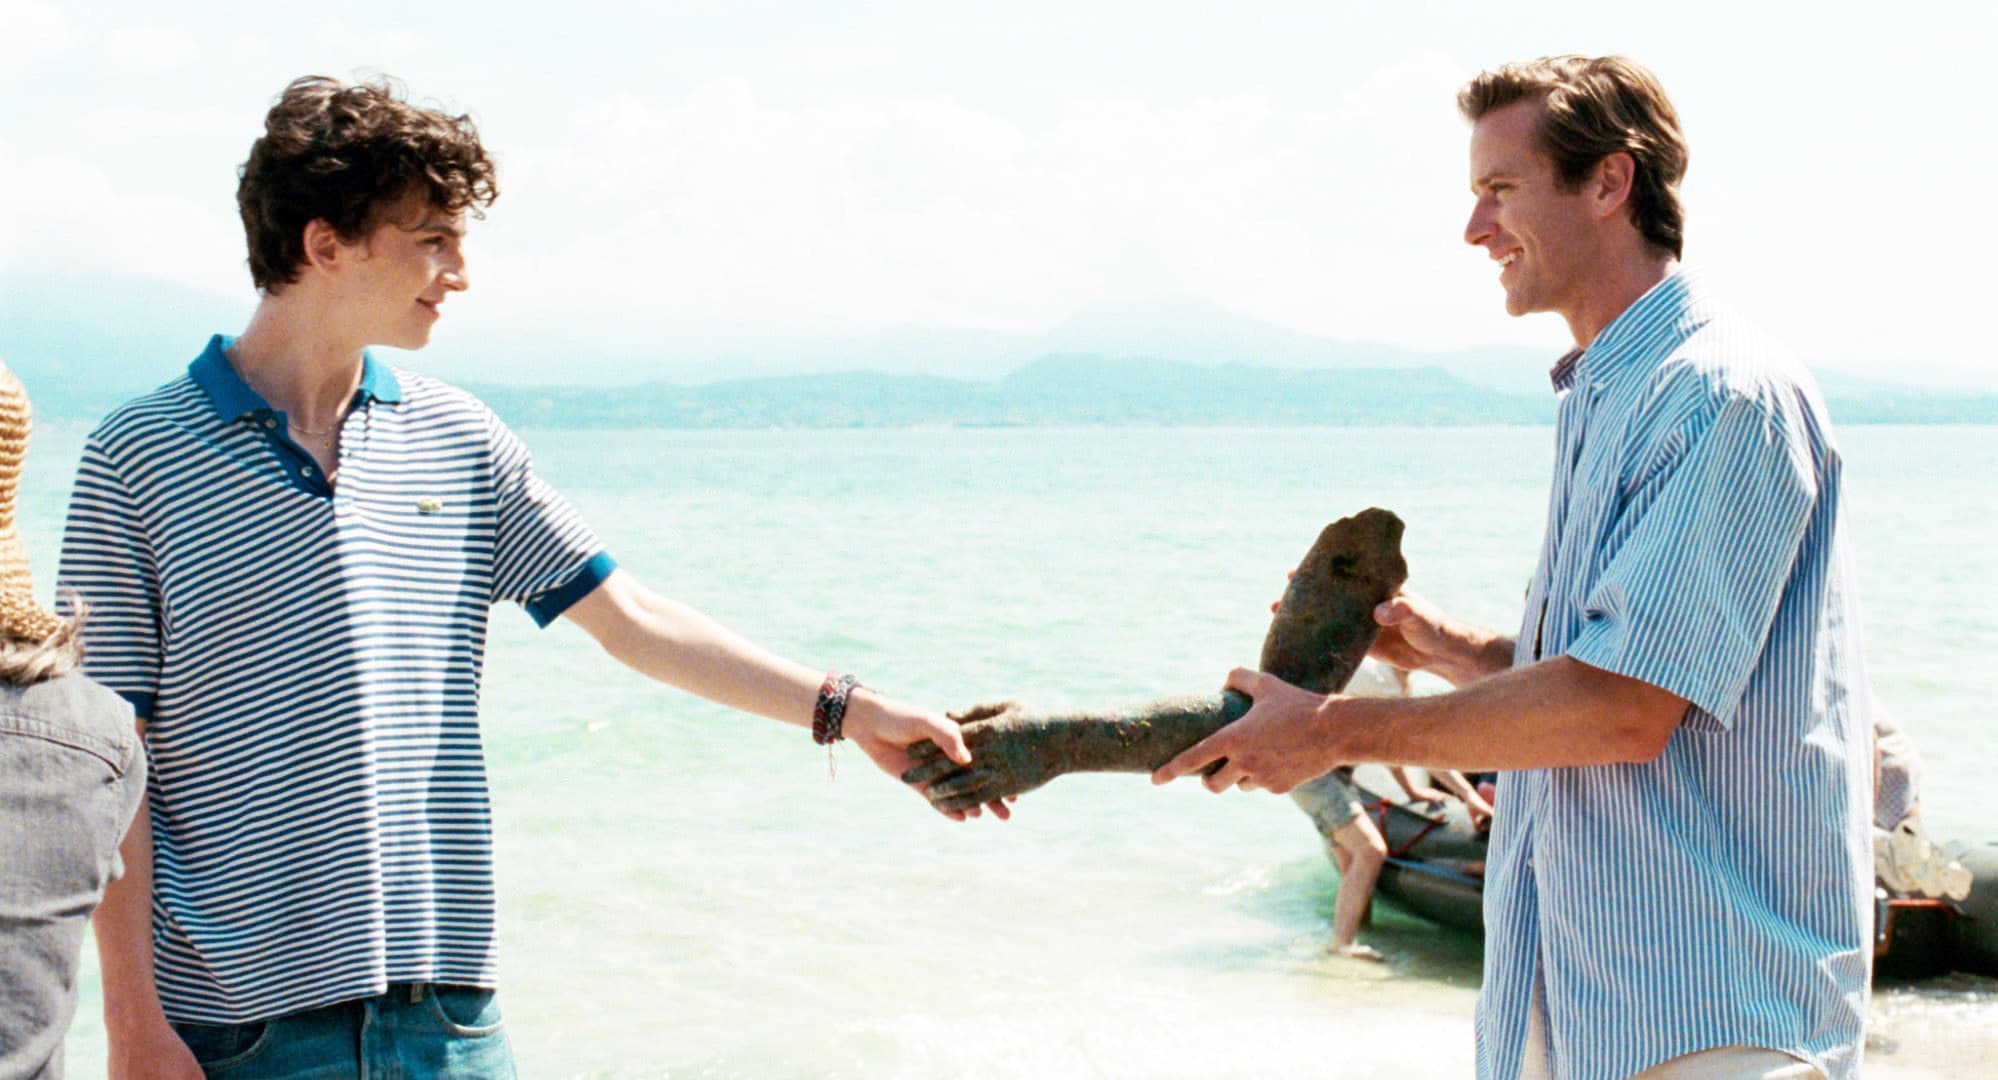 Timothée Chalamet and Armie Hammer look at each other as they hold a piece of driftwood